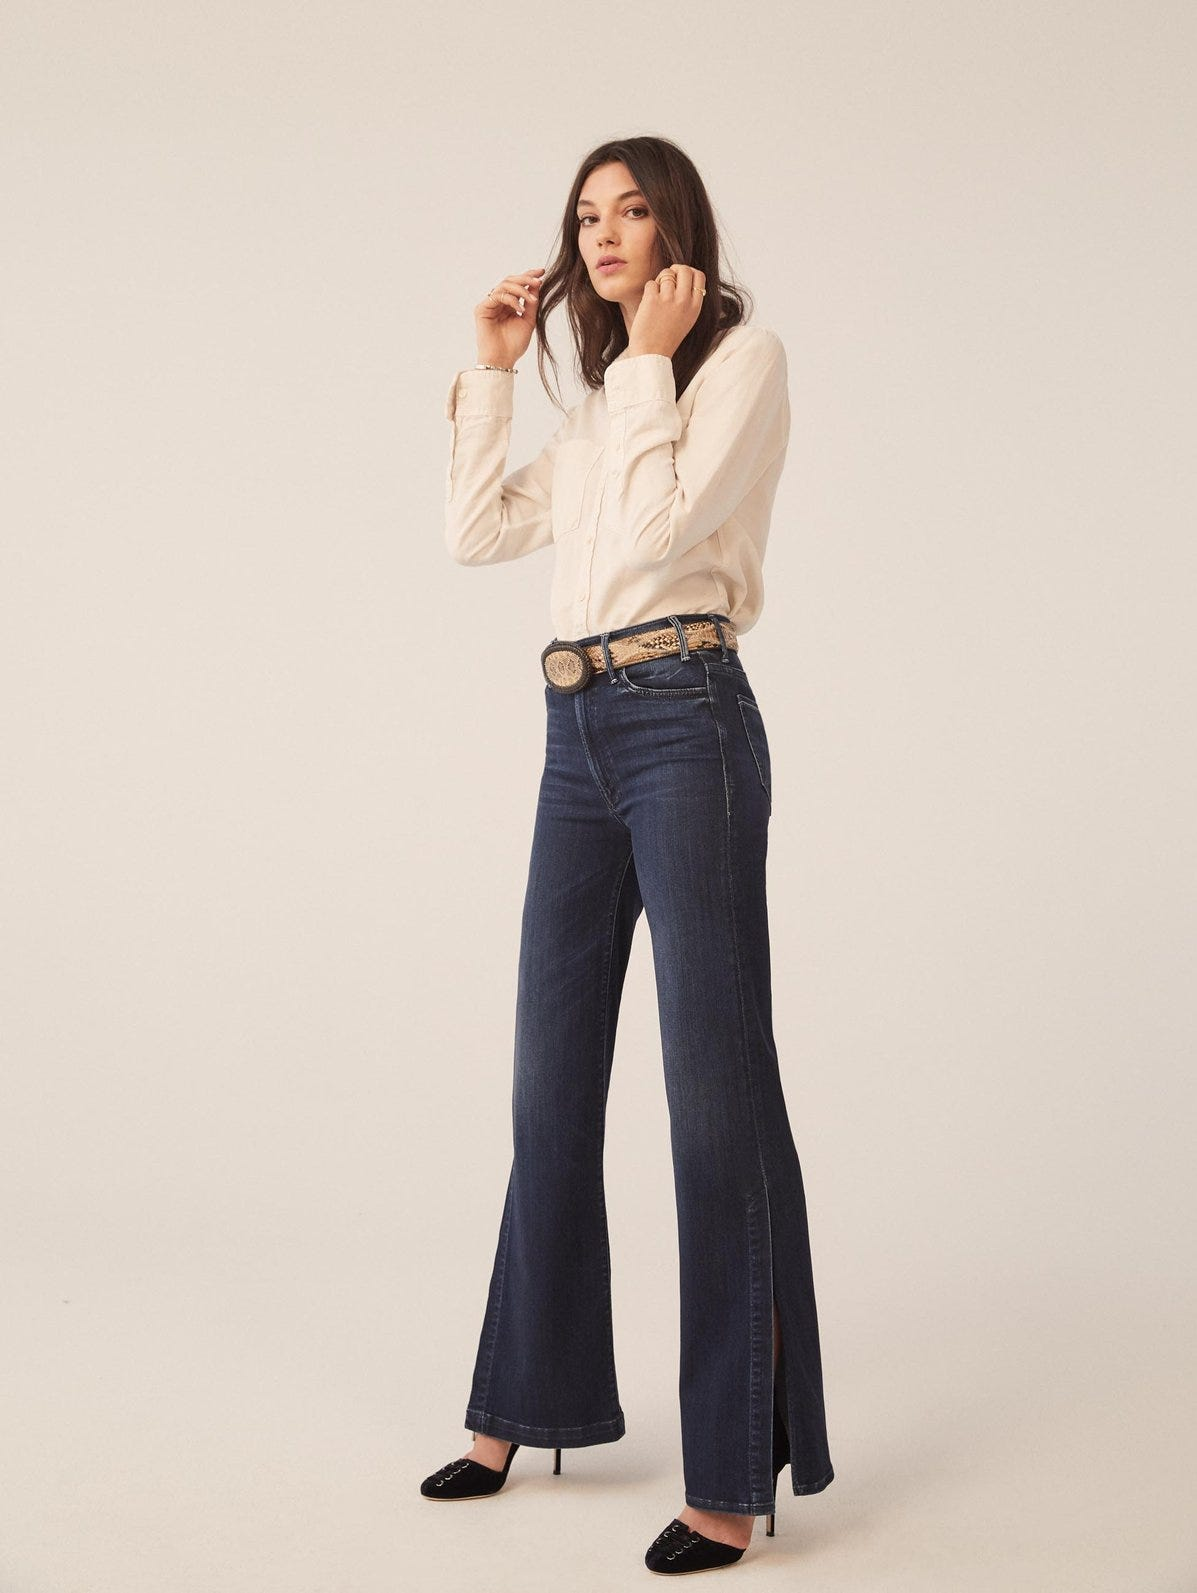 Denim   Jean Trends That Are Going To Be Huge In 2019 165d13abe